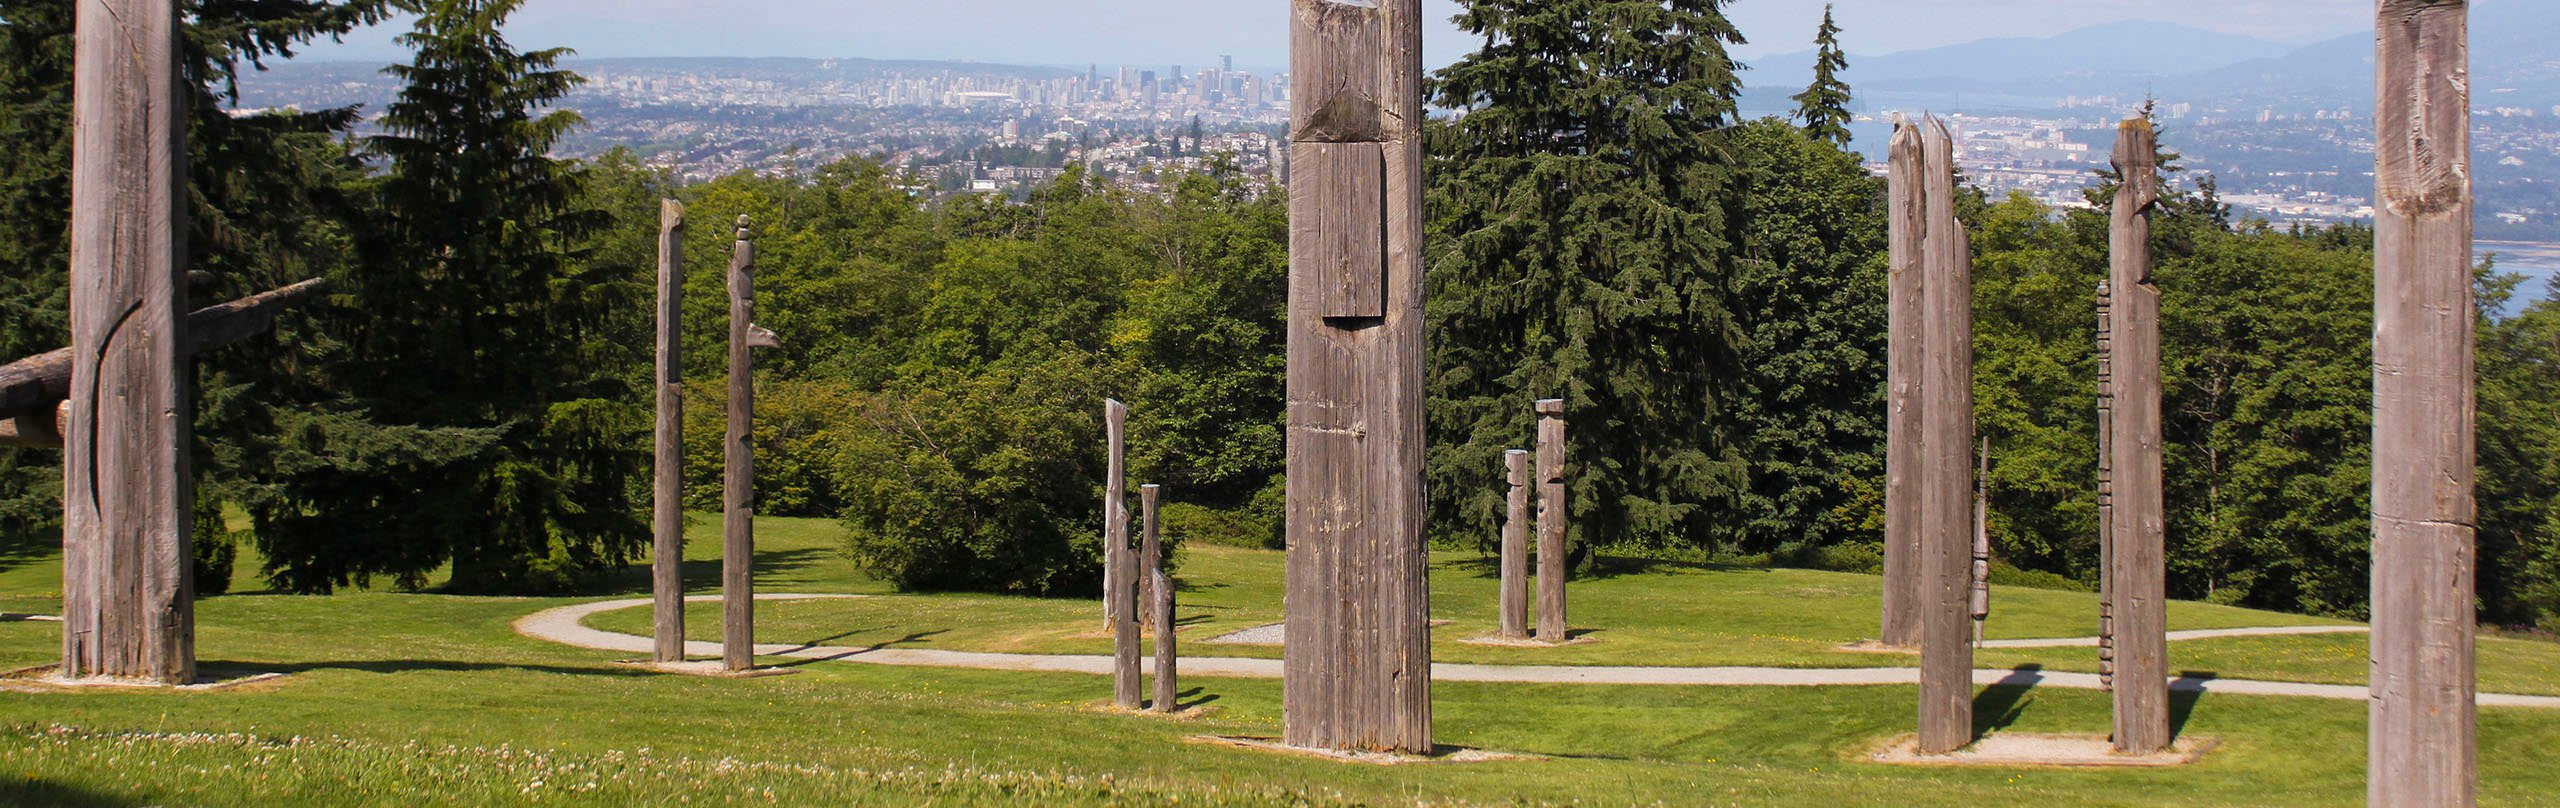 The Japanese inspired totem poles on Burnaby Mountain